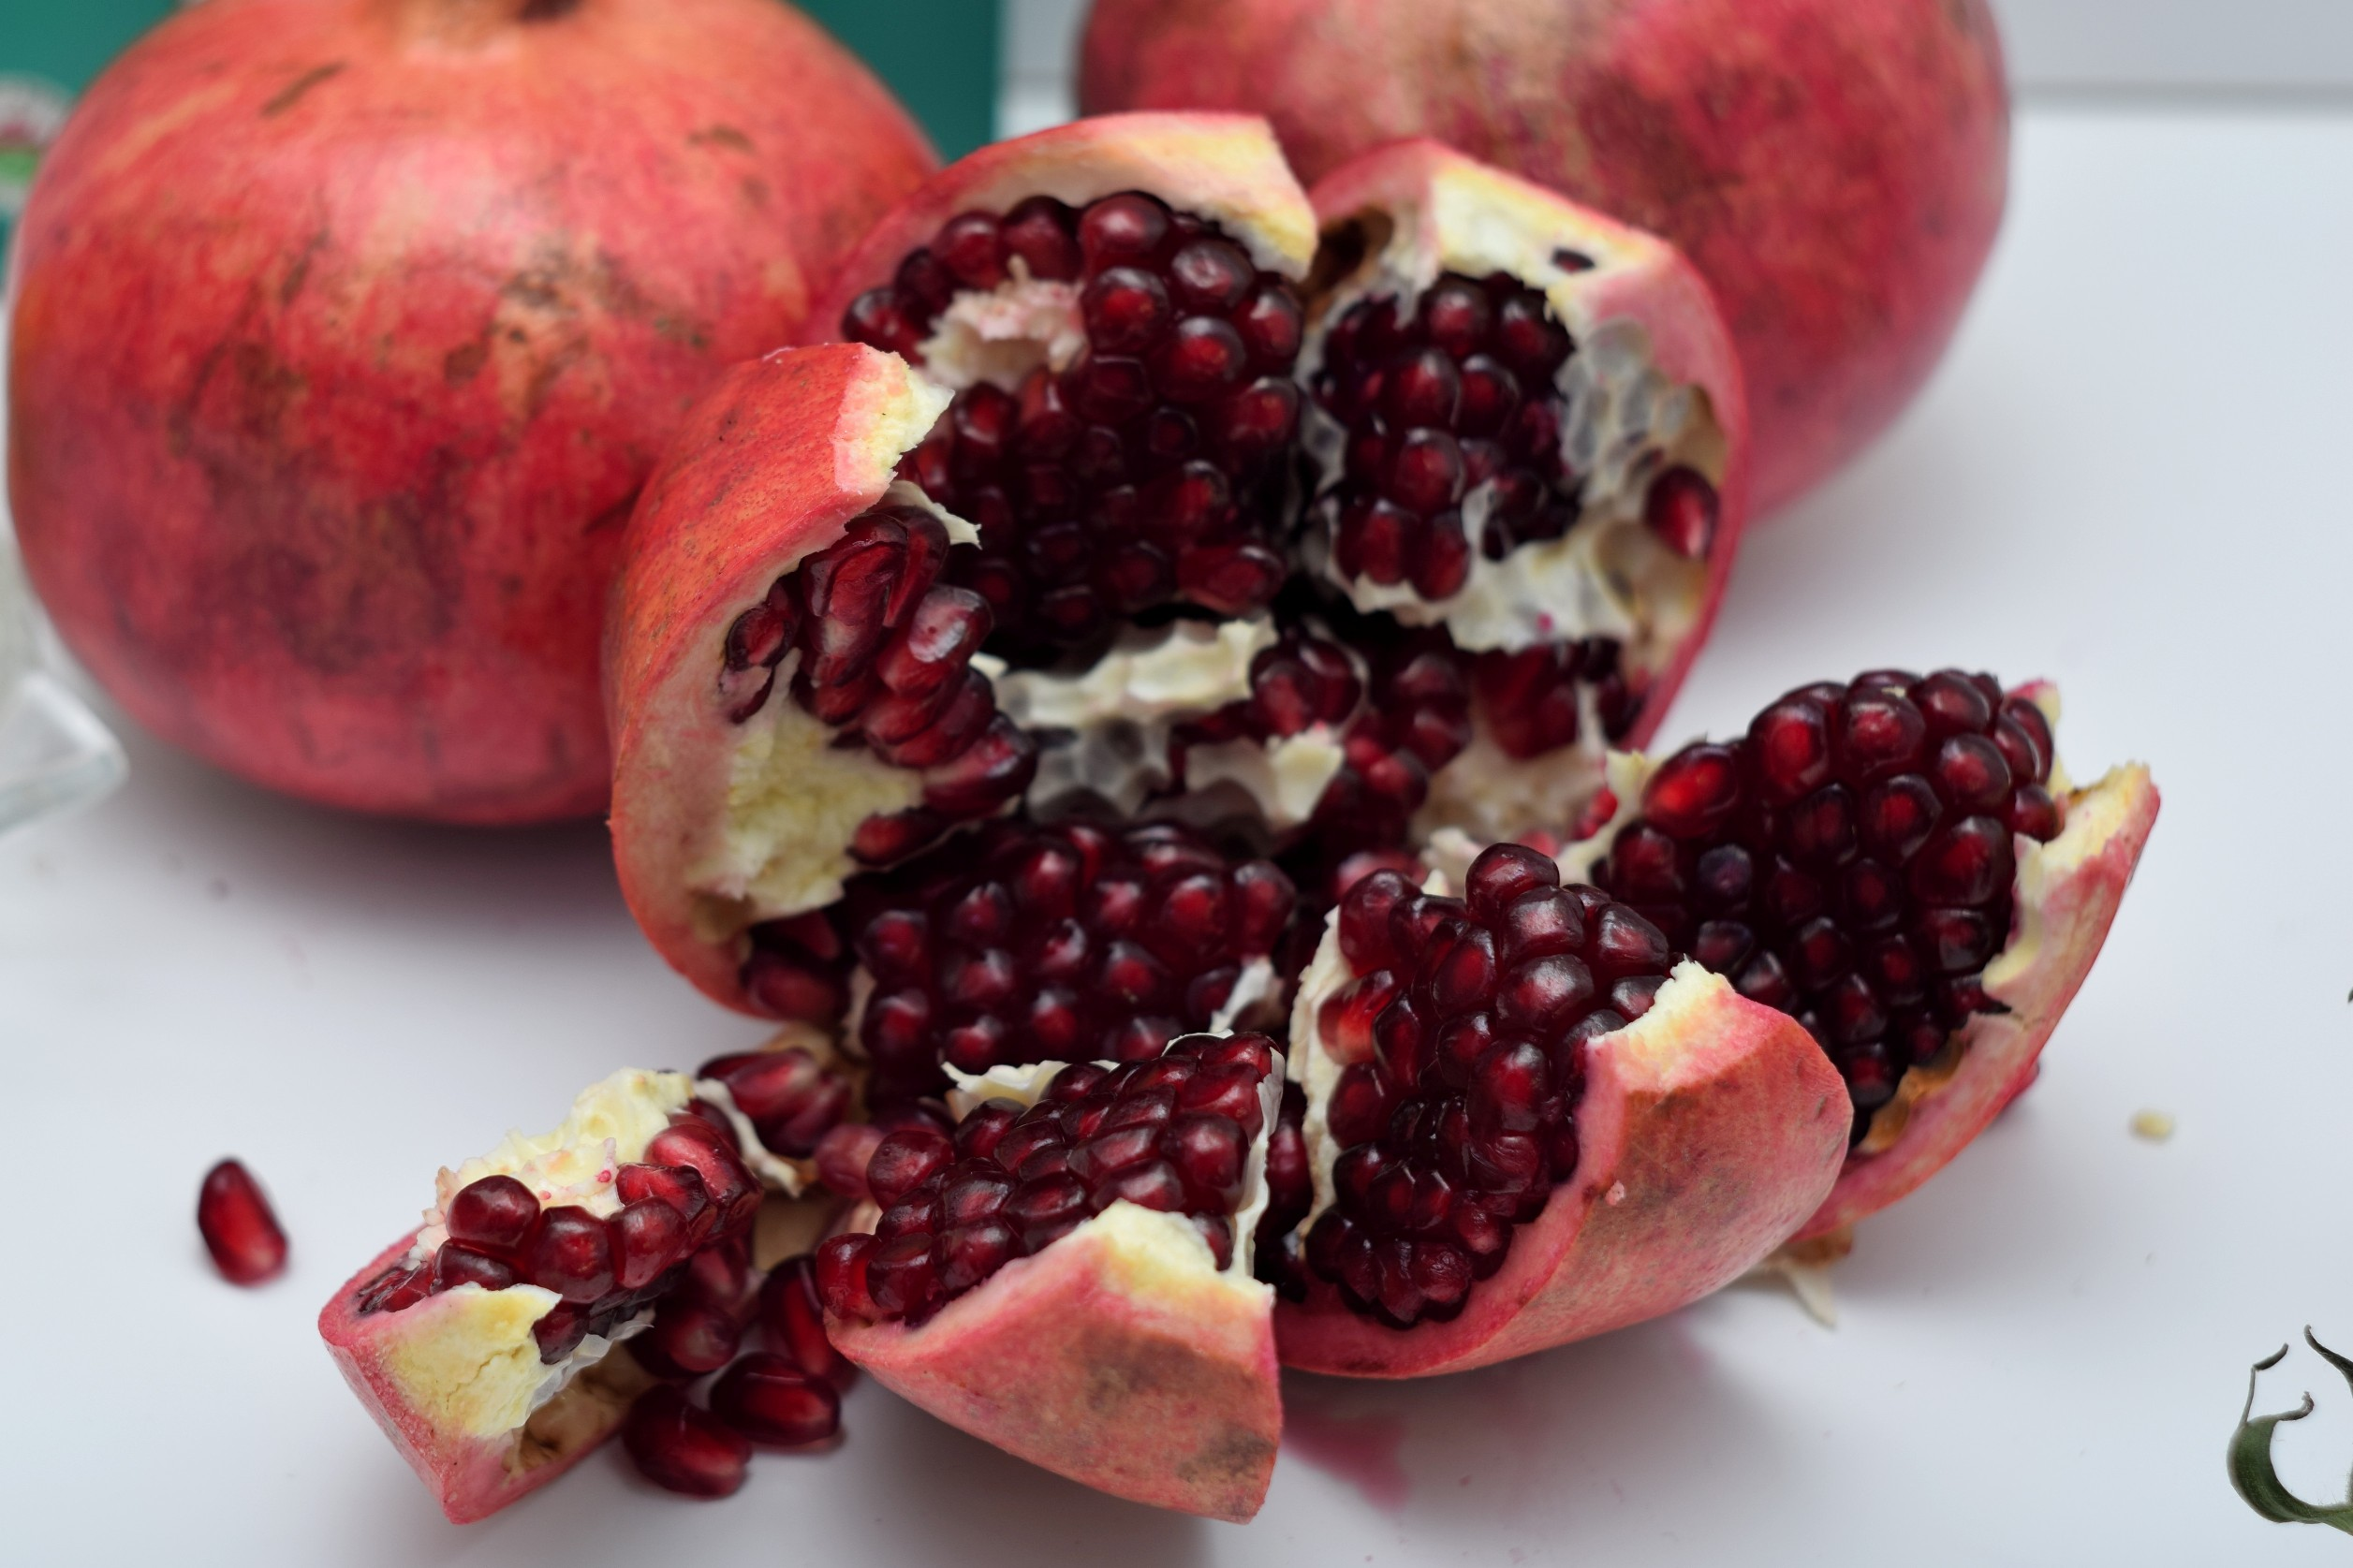 Pomegranate-open-to-be-seeded